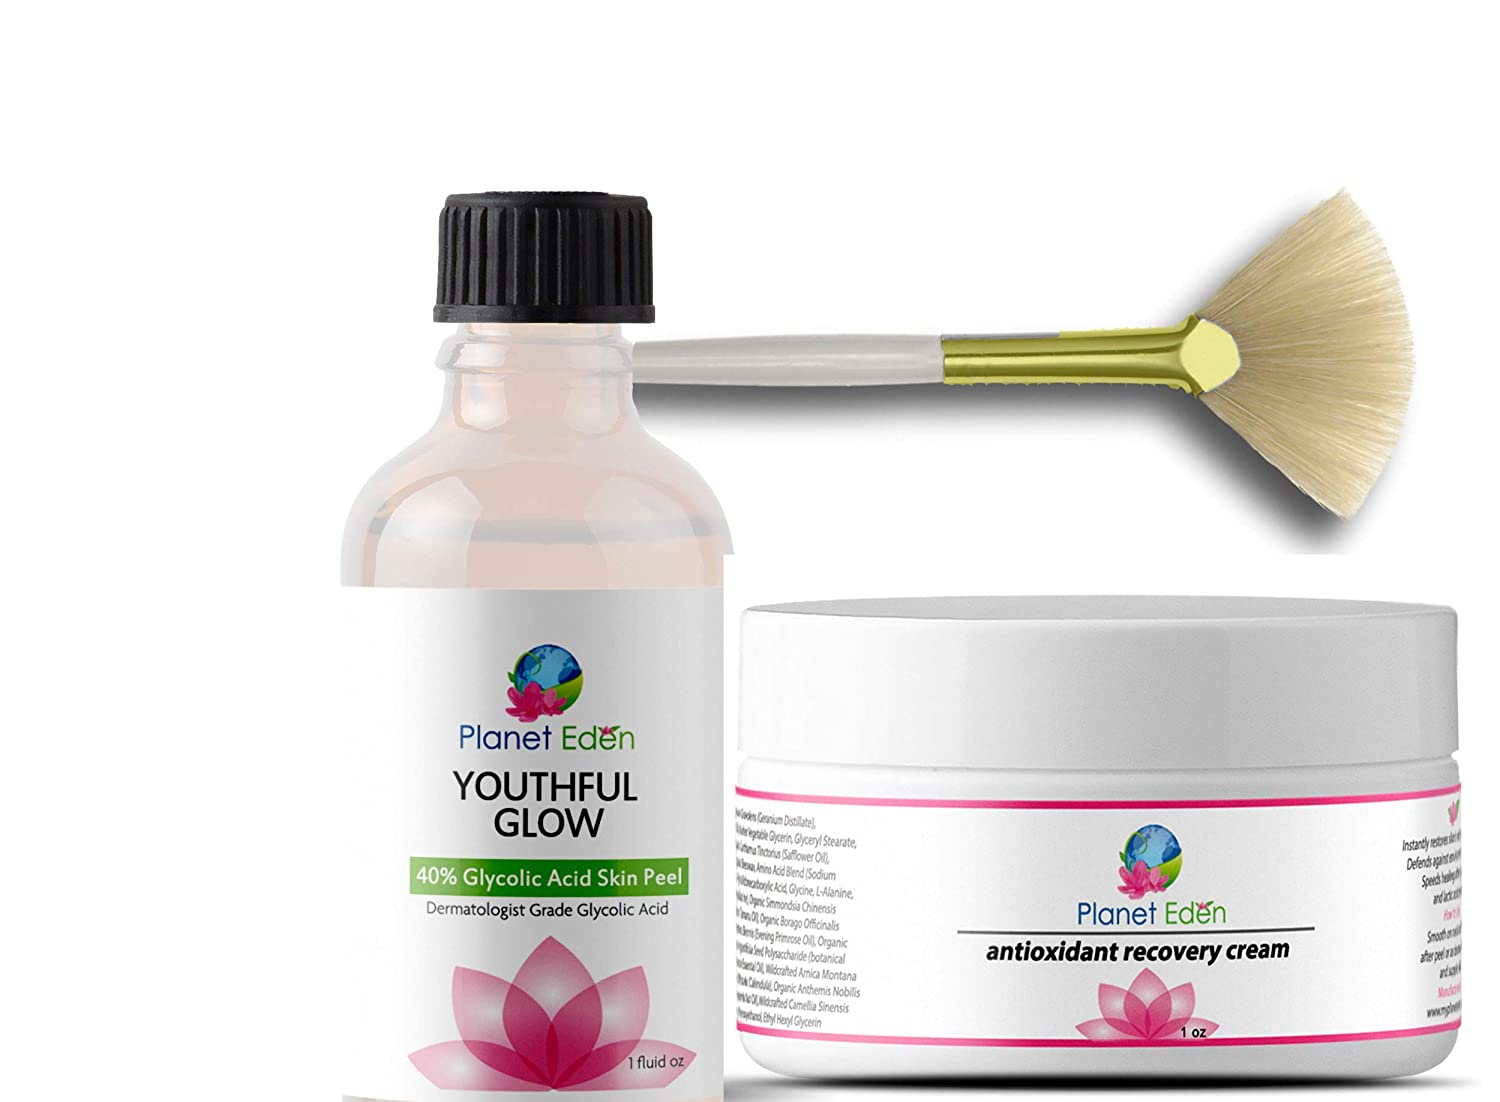 Planet Eden 40% Glycolic Acid Chemical Skin Peel Kit with Antioxidant Recovery Cream and Fan Brush